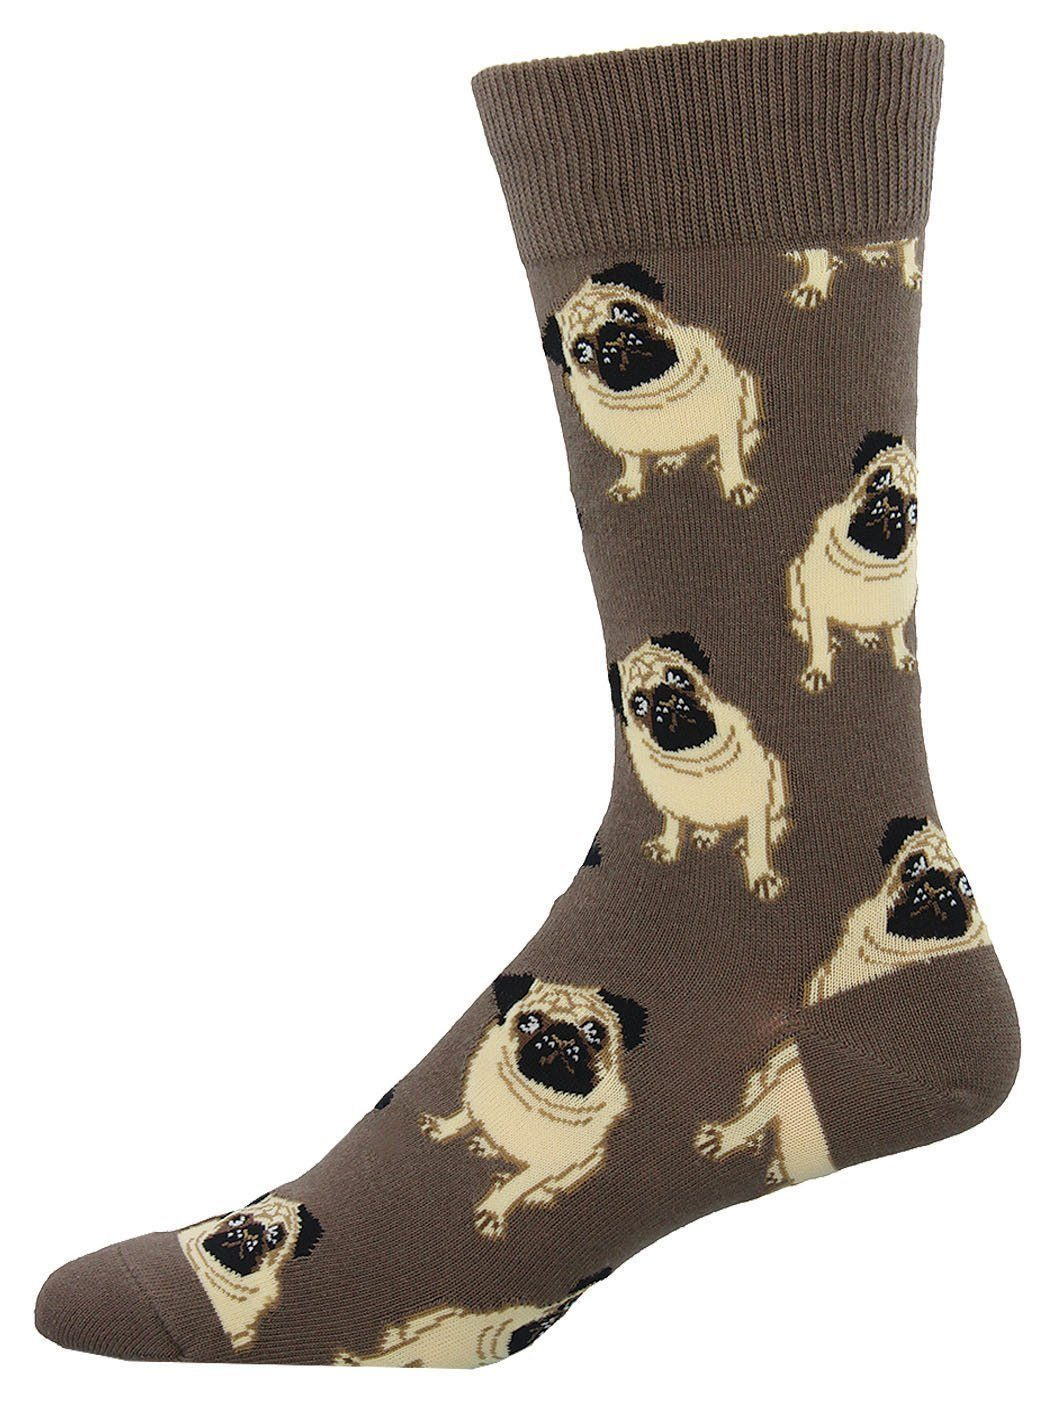 Socksmith - Pugs Crew Socks | Men's - Knock Your Socks Off